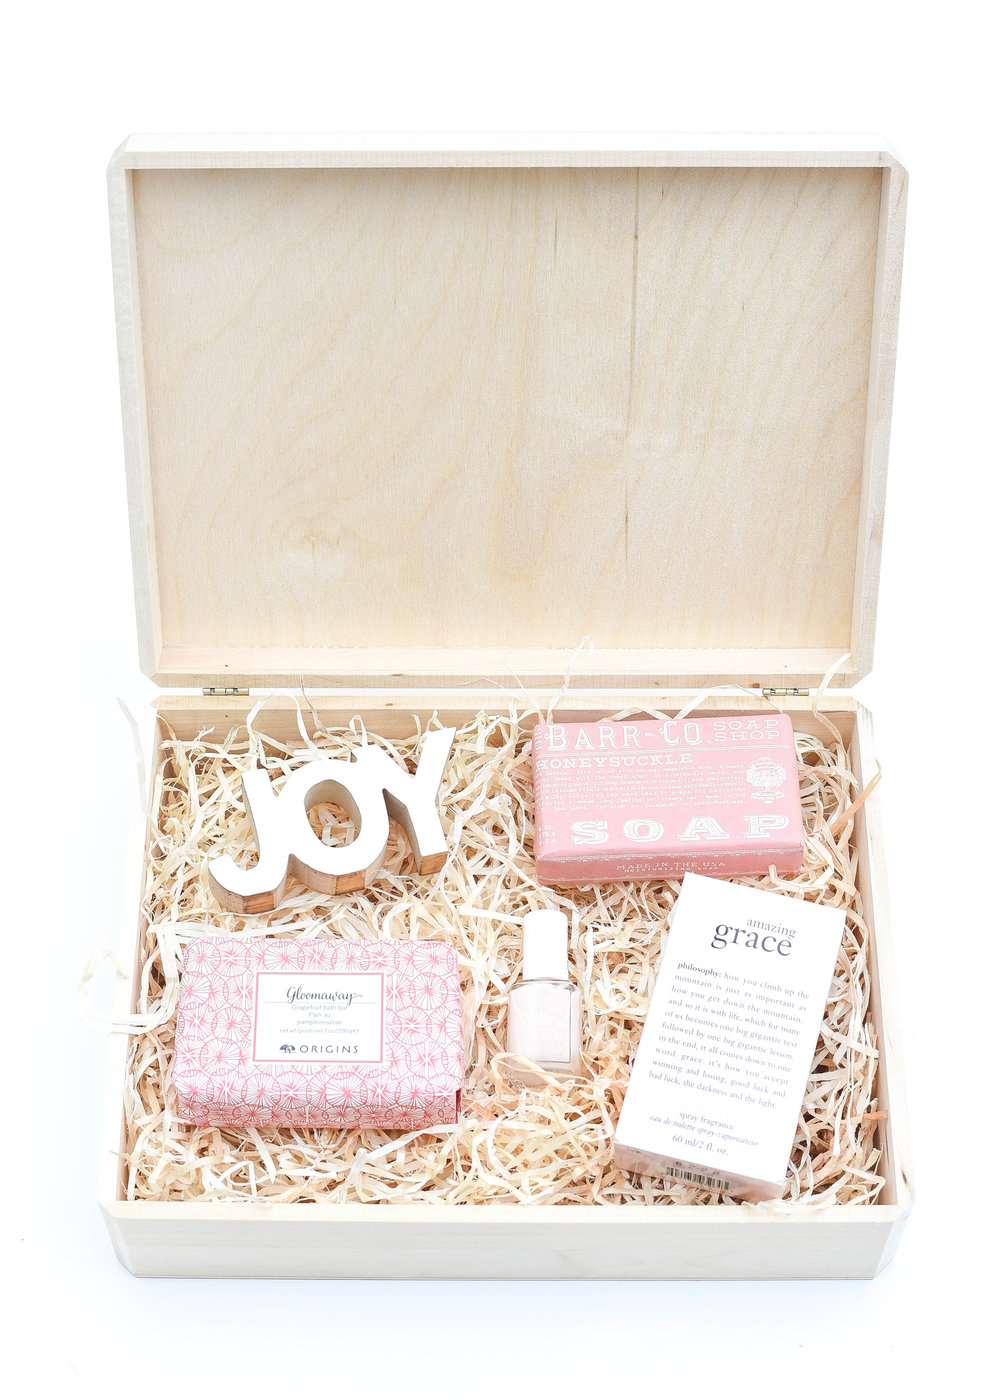 For Her, Sweet Start To The Day - For so many of us, we're the last on the to-do list, and for that reason, it's why the simple indulgent gifts can mean the most. Any mom, daughter or friend would appreciate this sweetly fragrant start to the day. Honeysuckle and Grapefruit Bar Soaps are hands down my happy favorites. An understated pink shade of nails and a spray of Amazing Grace ensure that even the most stressful of days start out relaxed!For purchase info click links below:L:R | JOY (in store @ Target) | Honeysuckle Bar Soap | Grapefruit Bar Soap | Nail Polish | Amazing Grace Fragrance |My go to gift wrap this holiday, shown here:Unfinished Walnut Box (2 pack) | Aspen Wood Excelsior (BULK)Only needing to wrap one present?Individual Unfinished Walnut Box | Aspen Wood Excelsior (4 oz bag)